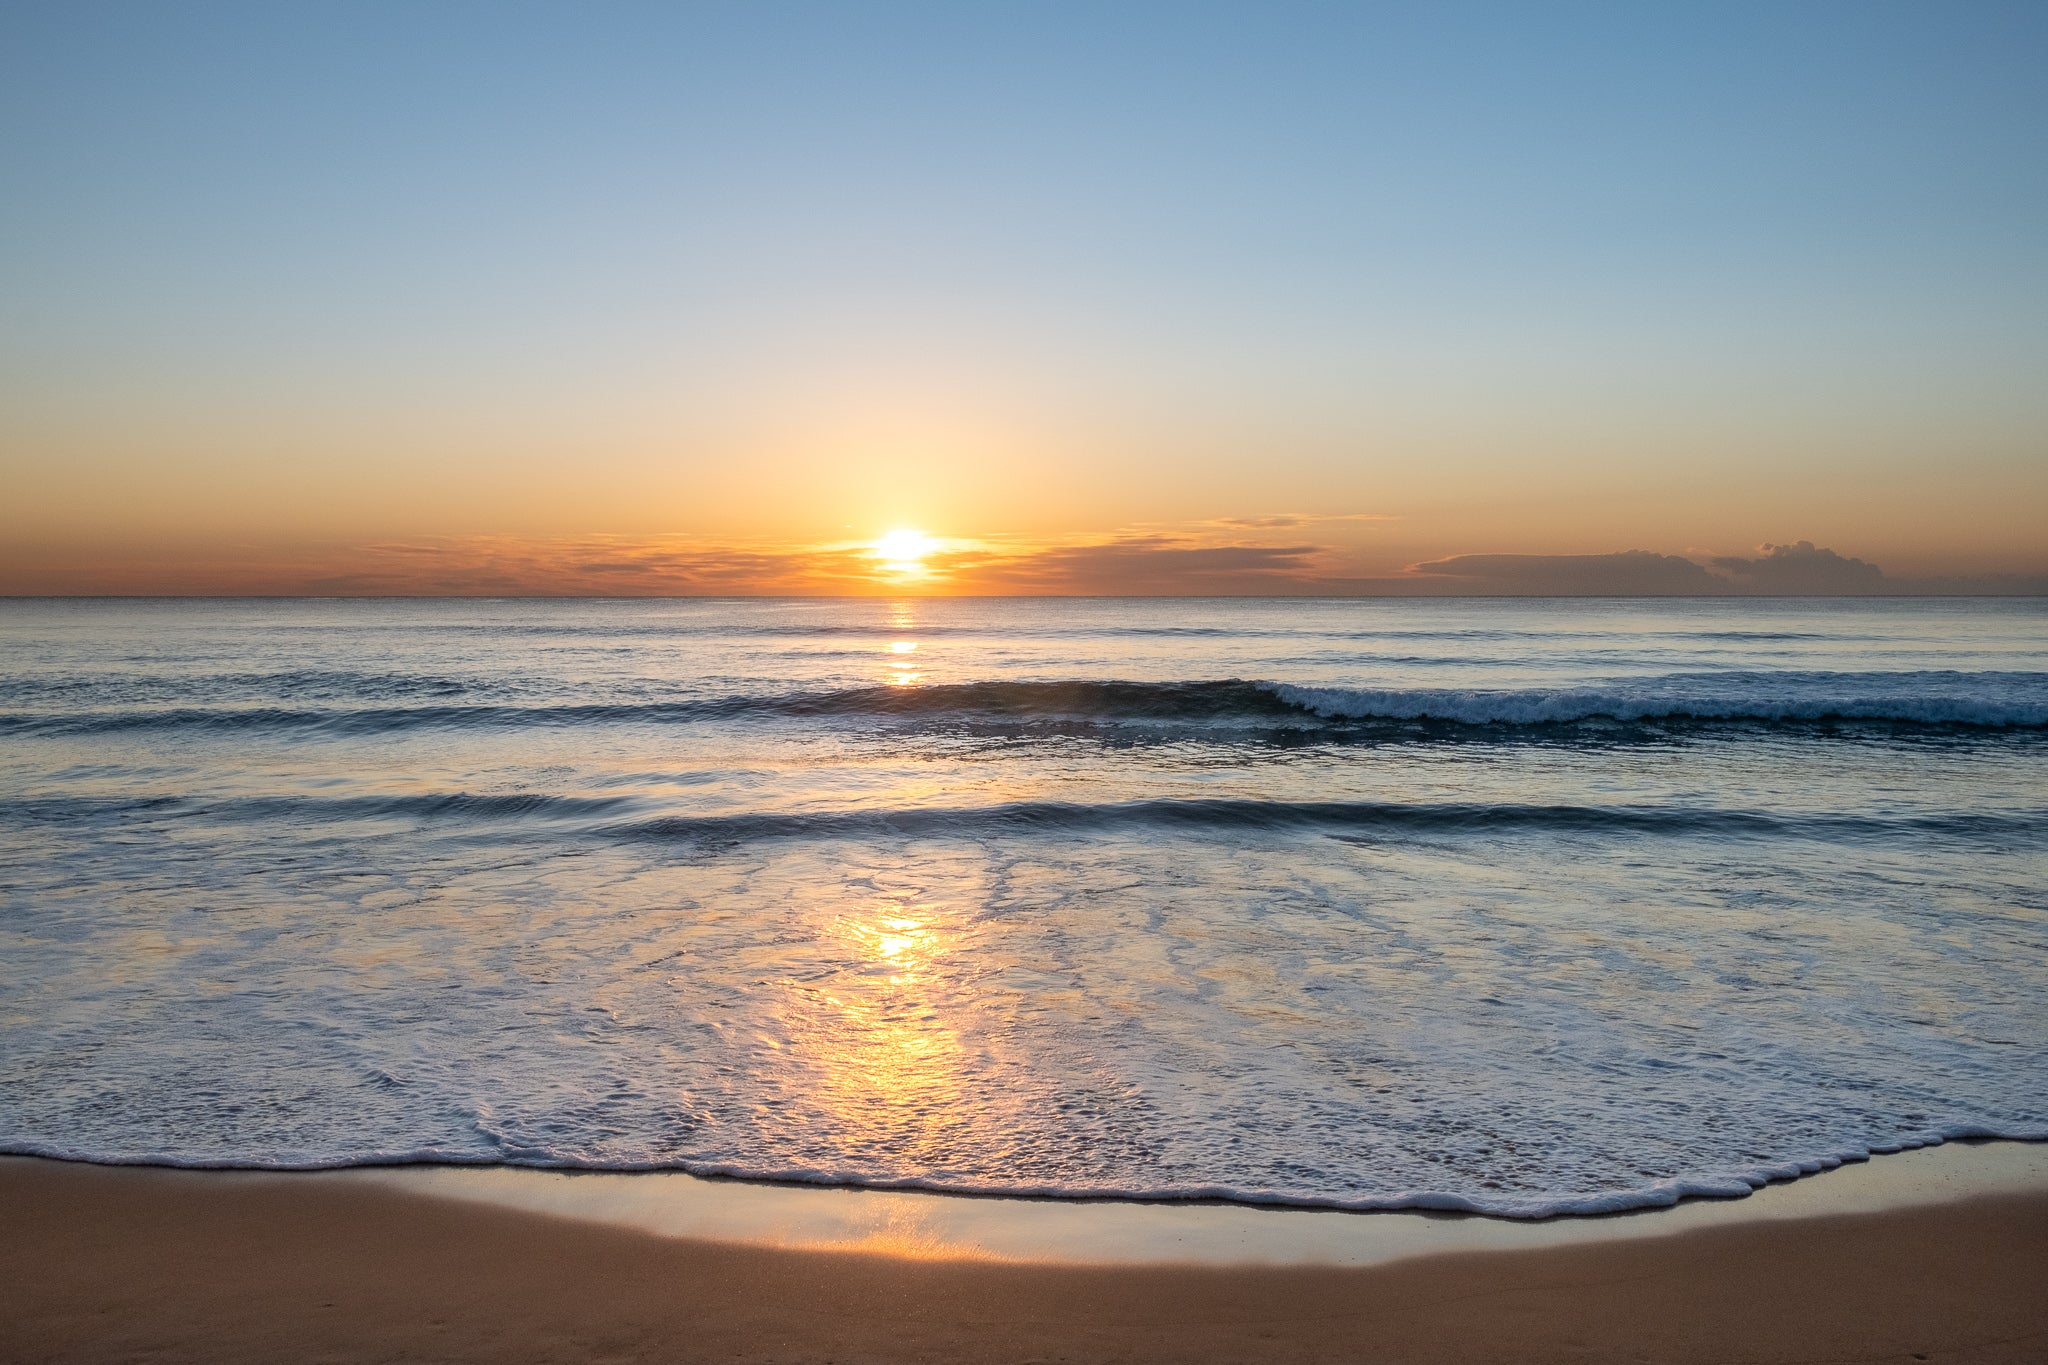 Sunrise photo from the 14th September 2019 at Manly Beach in Sydney